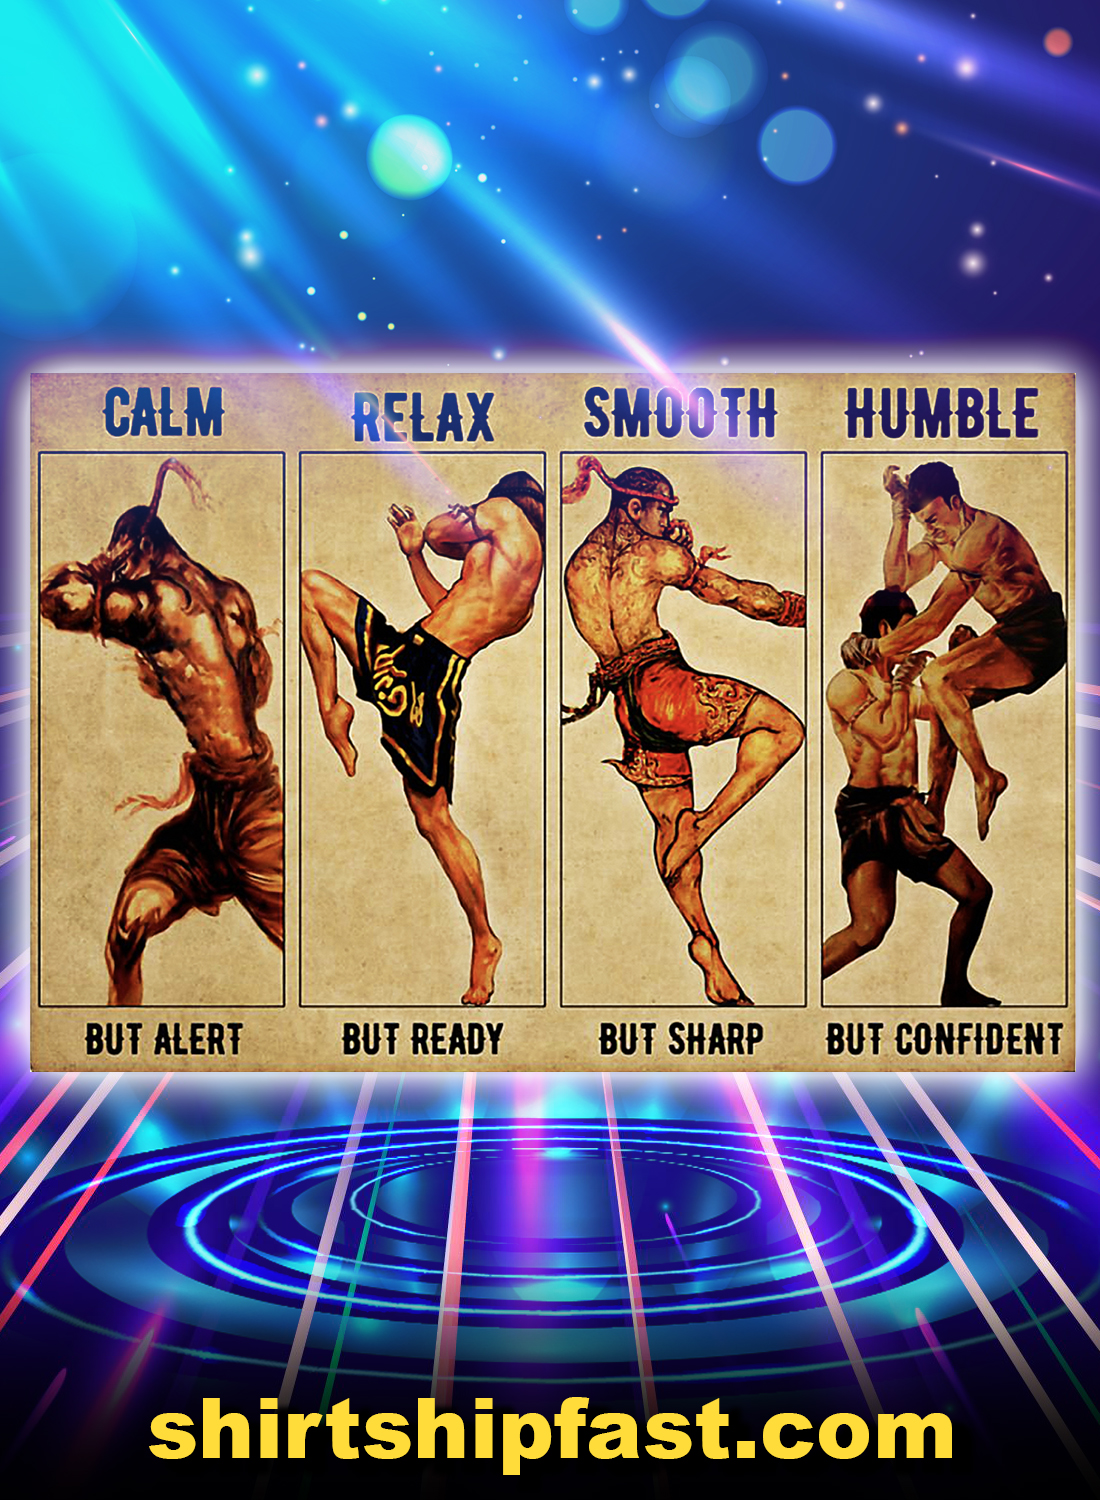 Calm relax smooth humble muay thai poster - A4